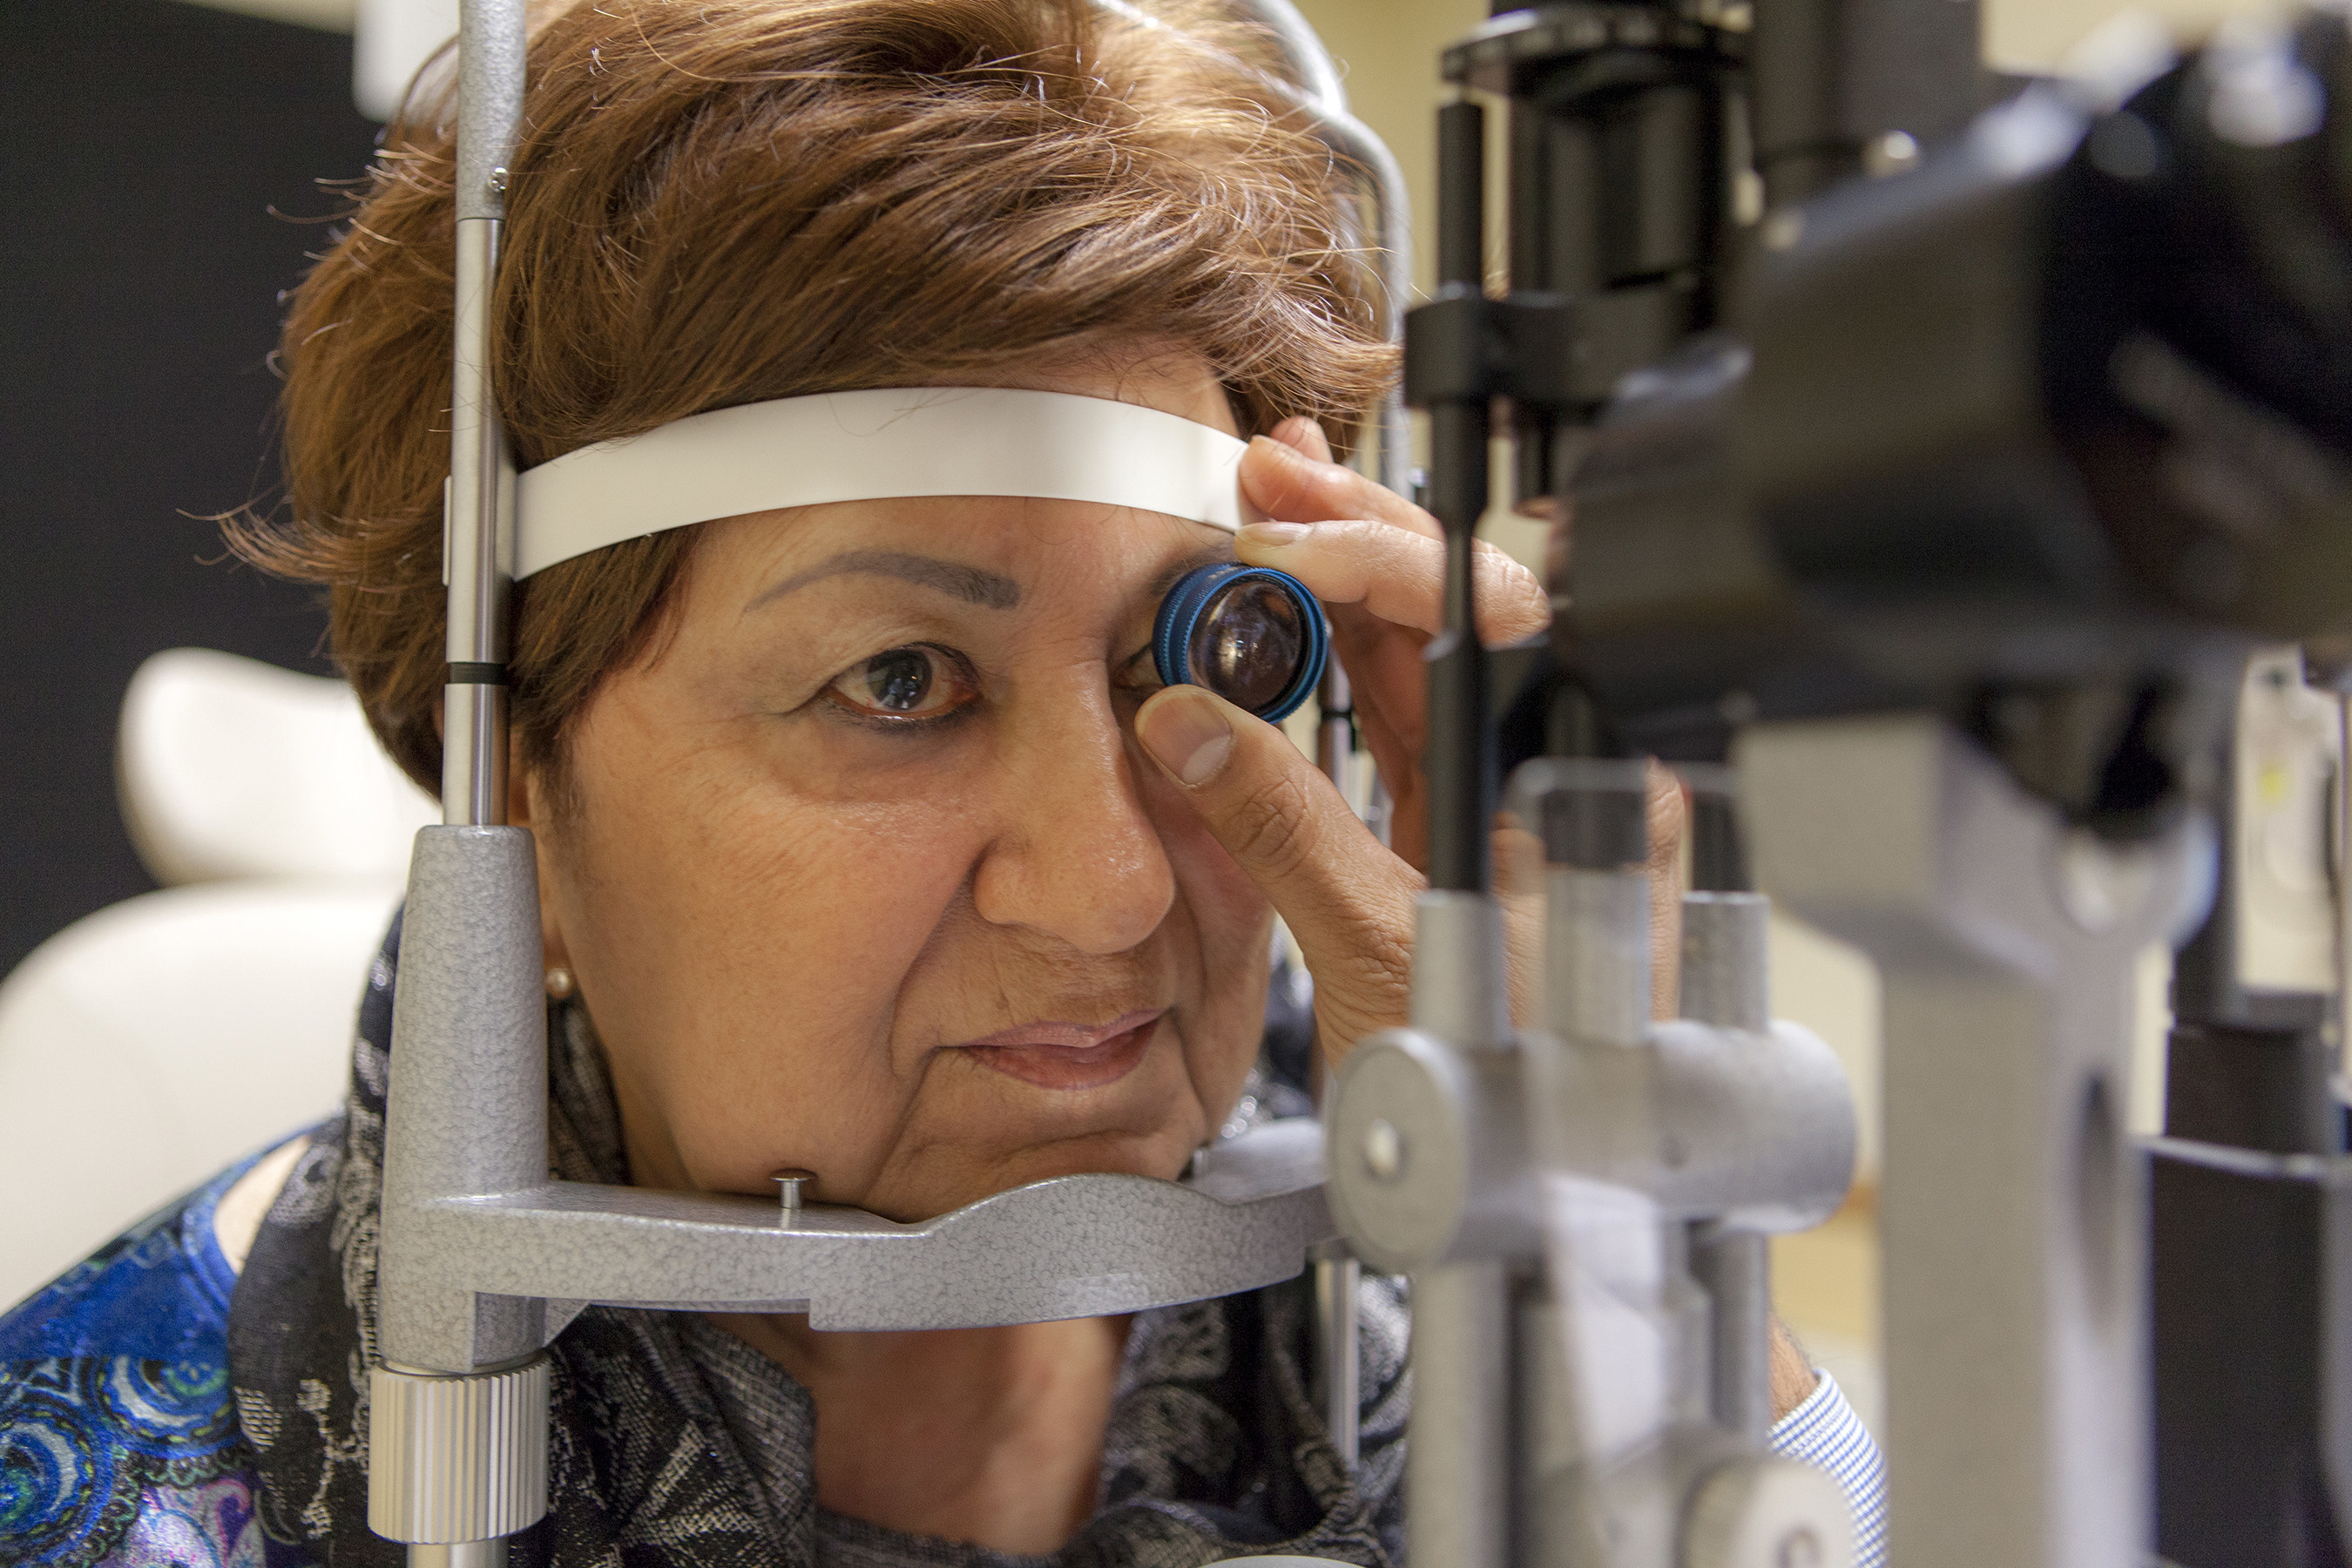 USC Roski Eye Institute researchers publish largest Latino eye study